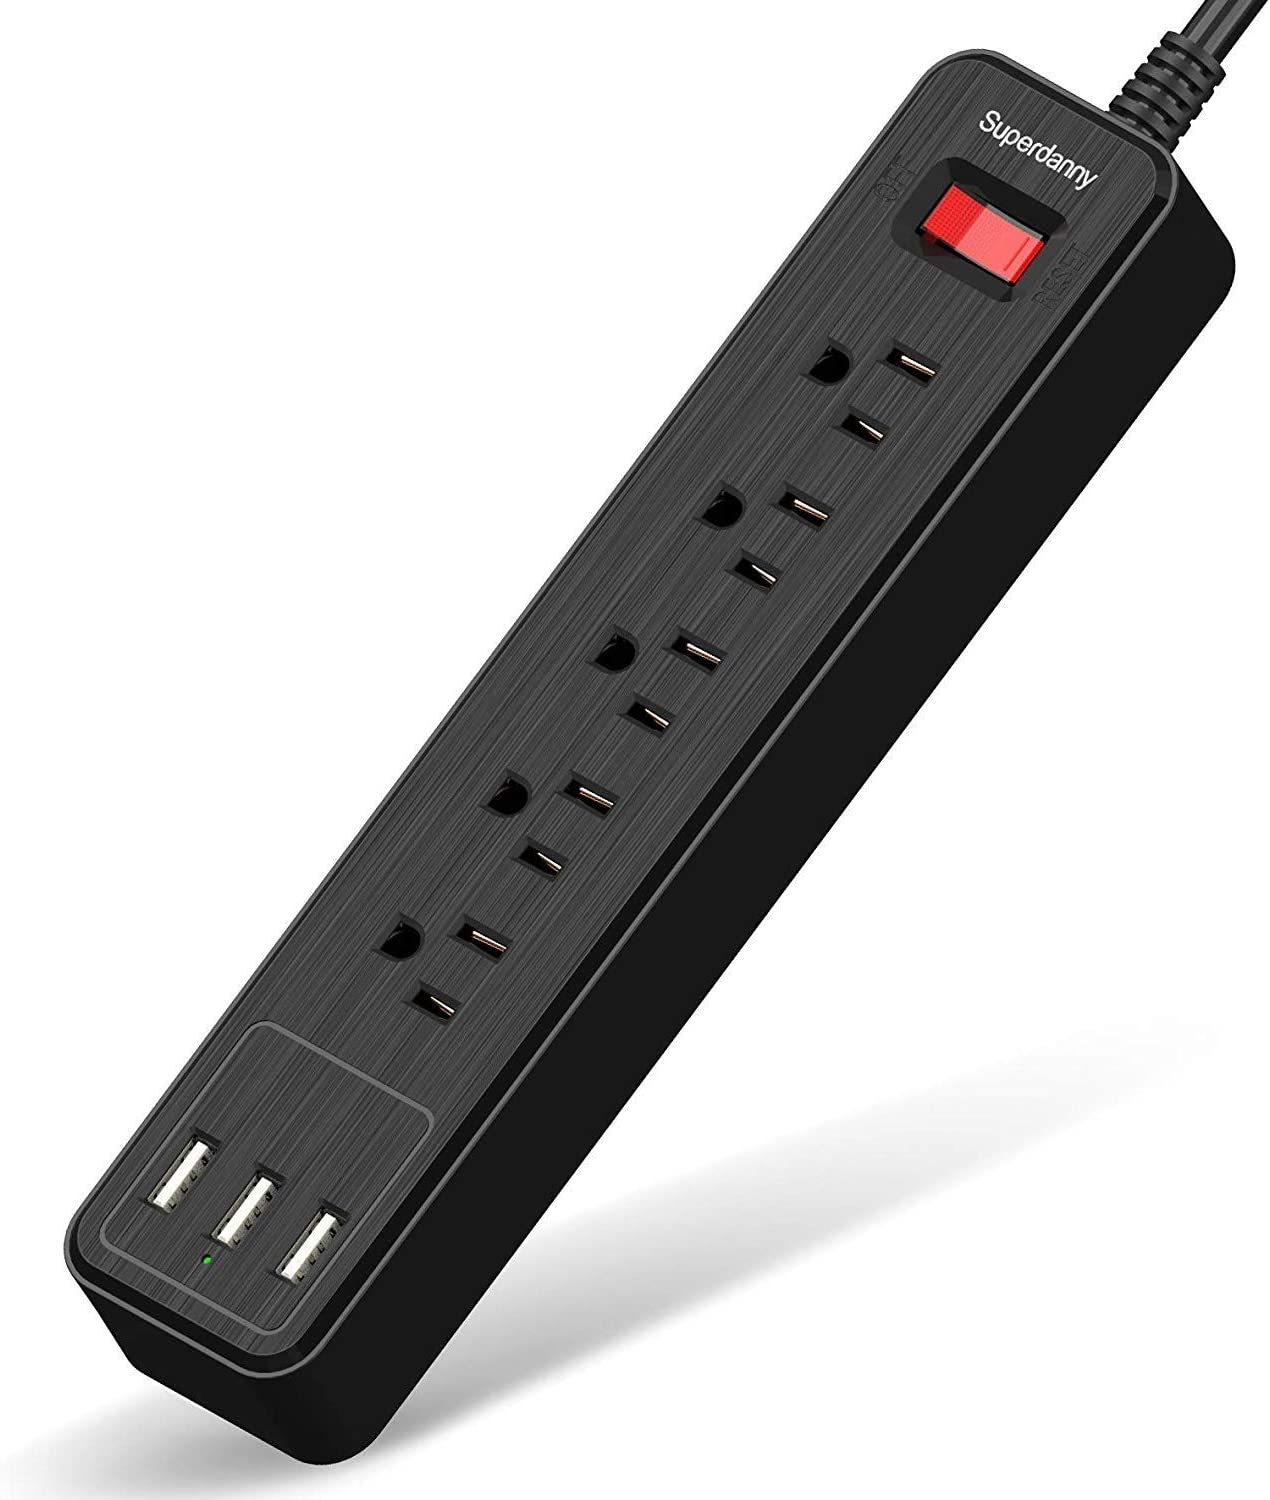 USB Surge Protector Power Strip Mountable Extension Cord Fire Proof Multiple Protection 5 Outlet 3 USB Port with Hook & Loop Fastener for iPhone iPad PC Home Office Travel Black SUPERDANNY